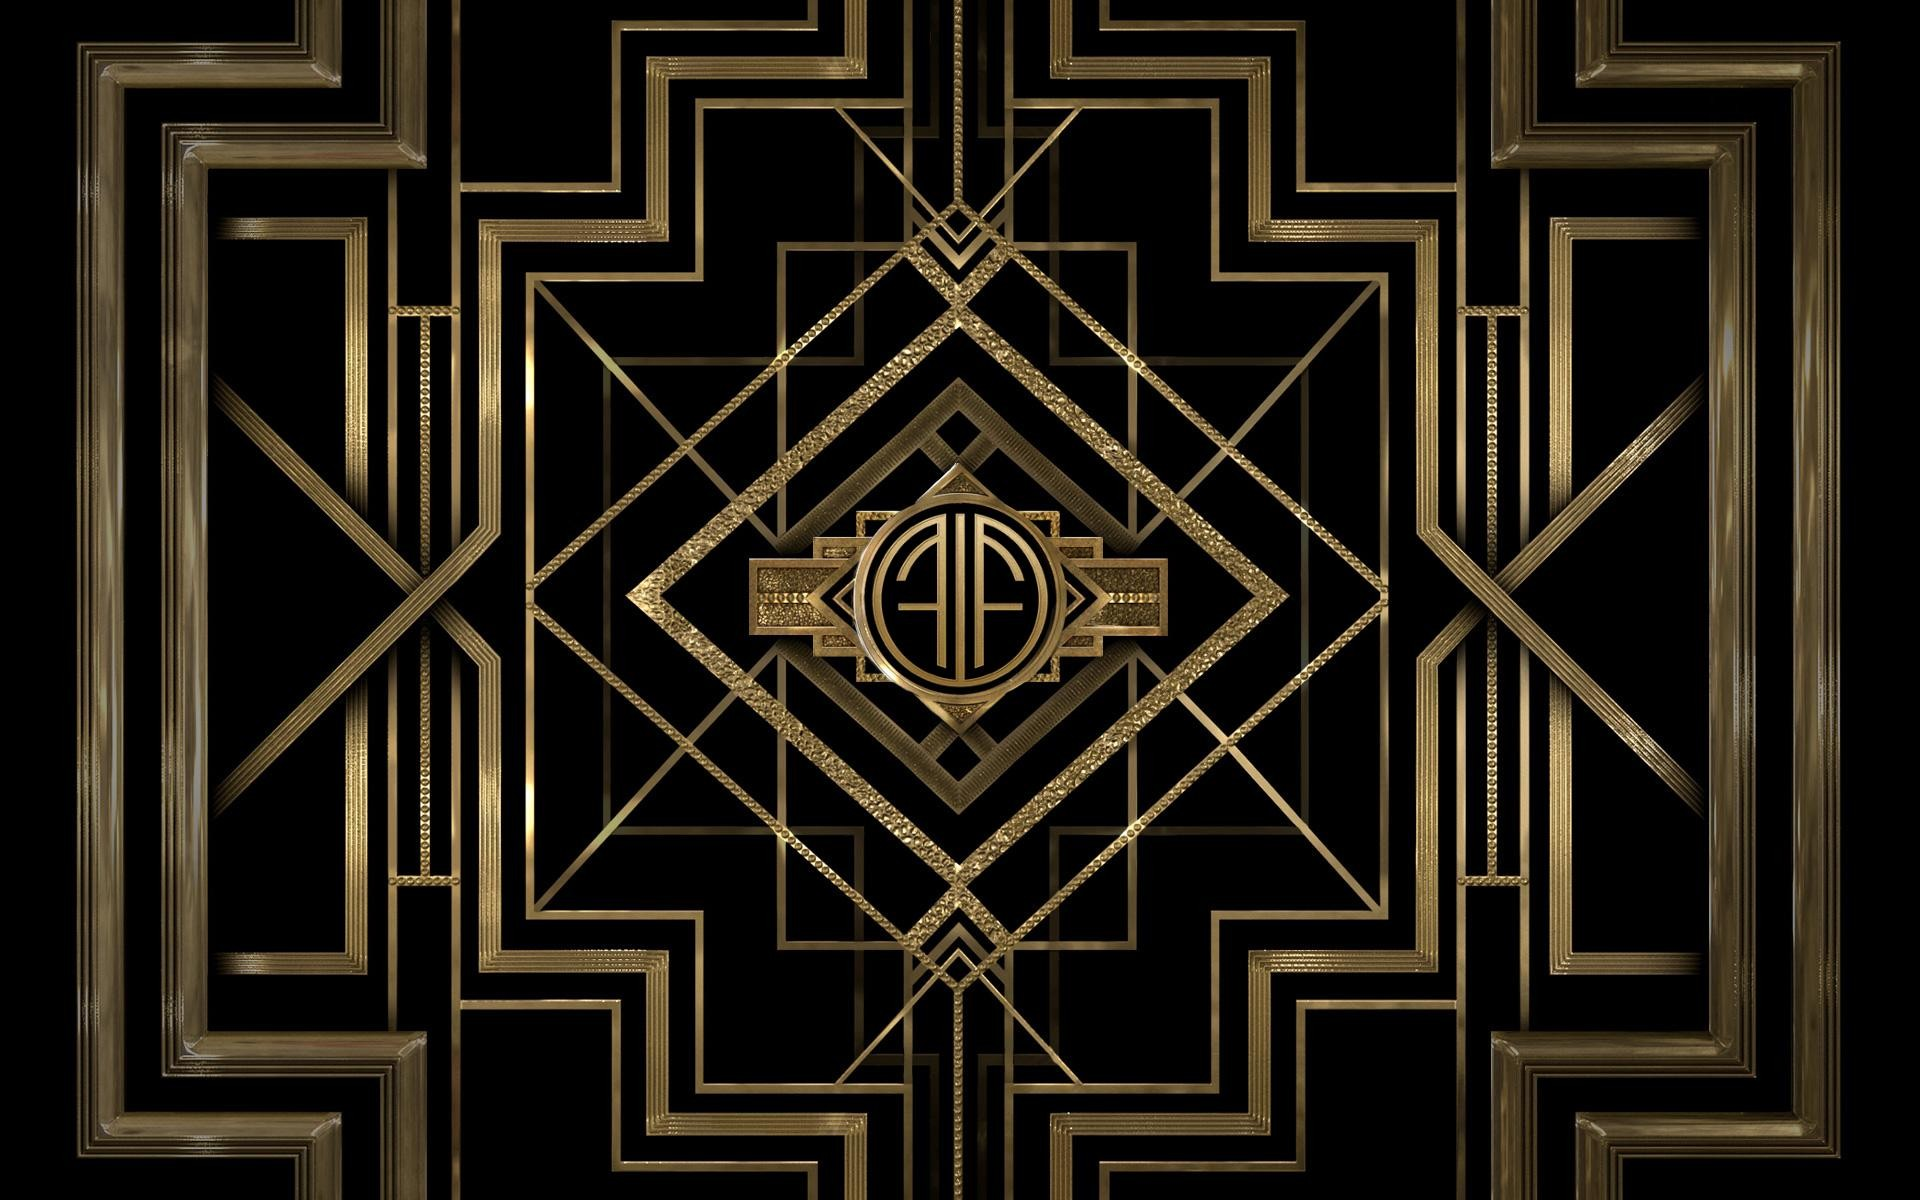 Art deco wallpaper 6583 1920x1200 px for Air deco